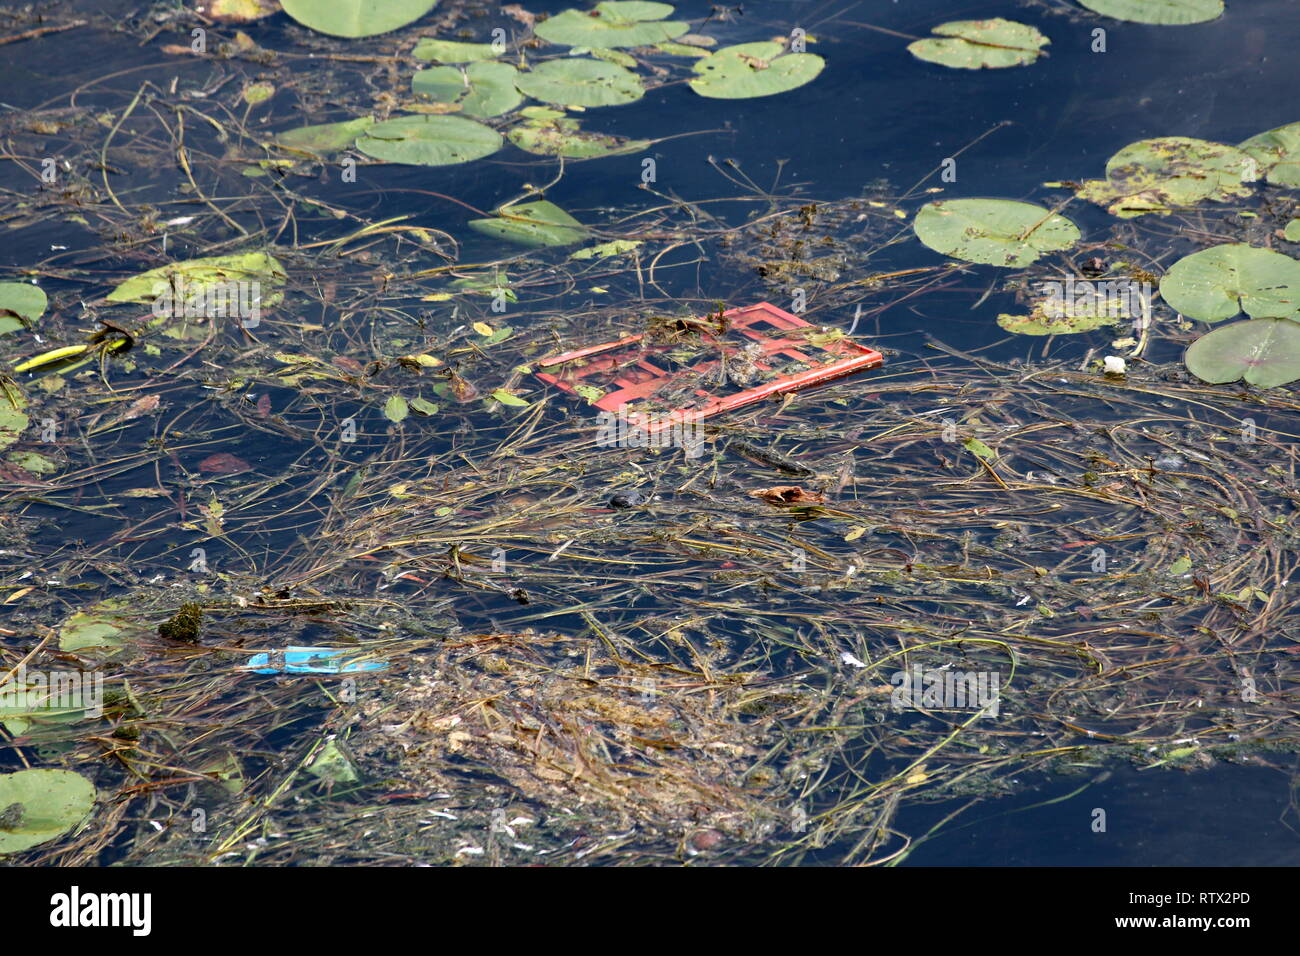 Fresh green leaves and dry fallen pine needles with branches floating mixed with garbage on calm river water on warm sunny day - Stock Image